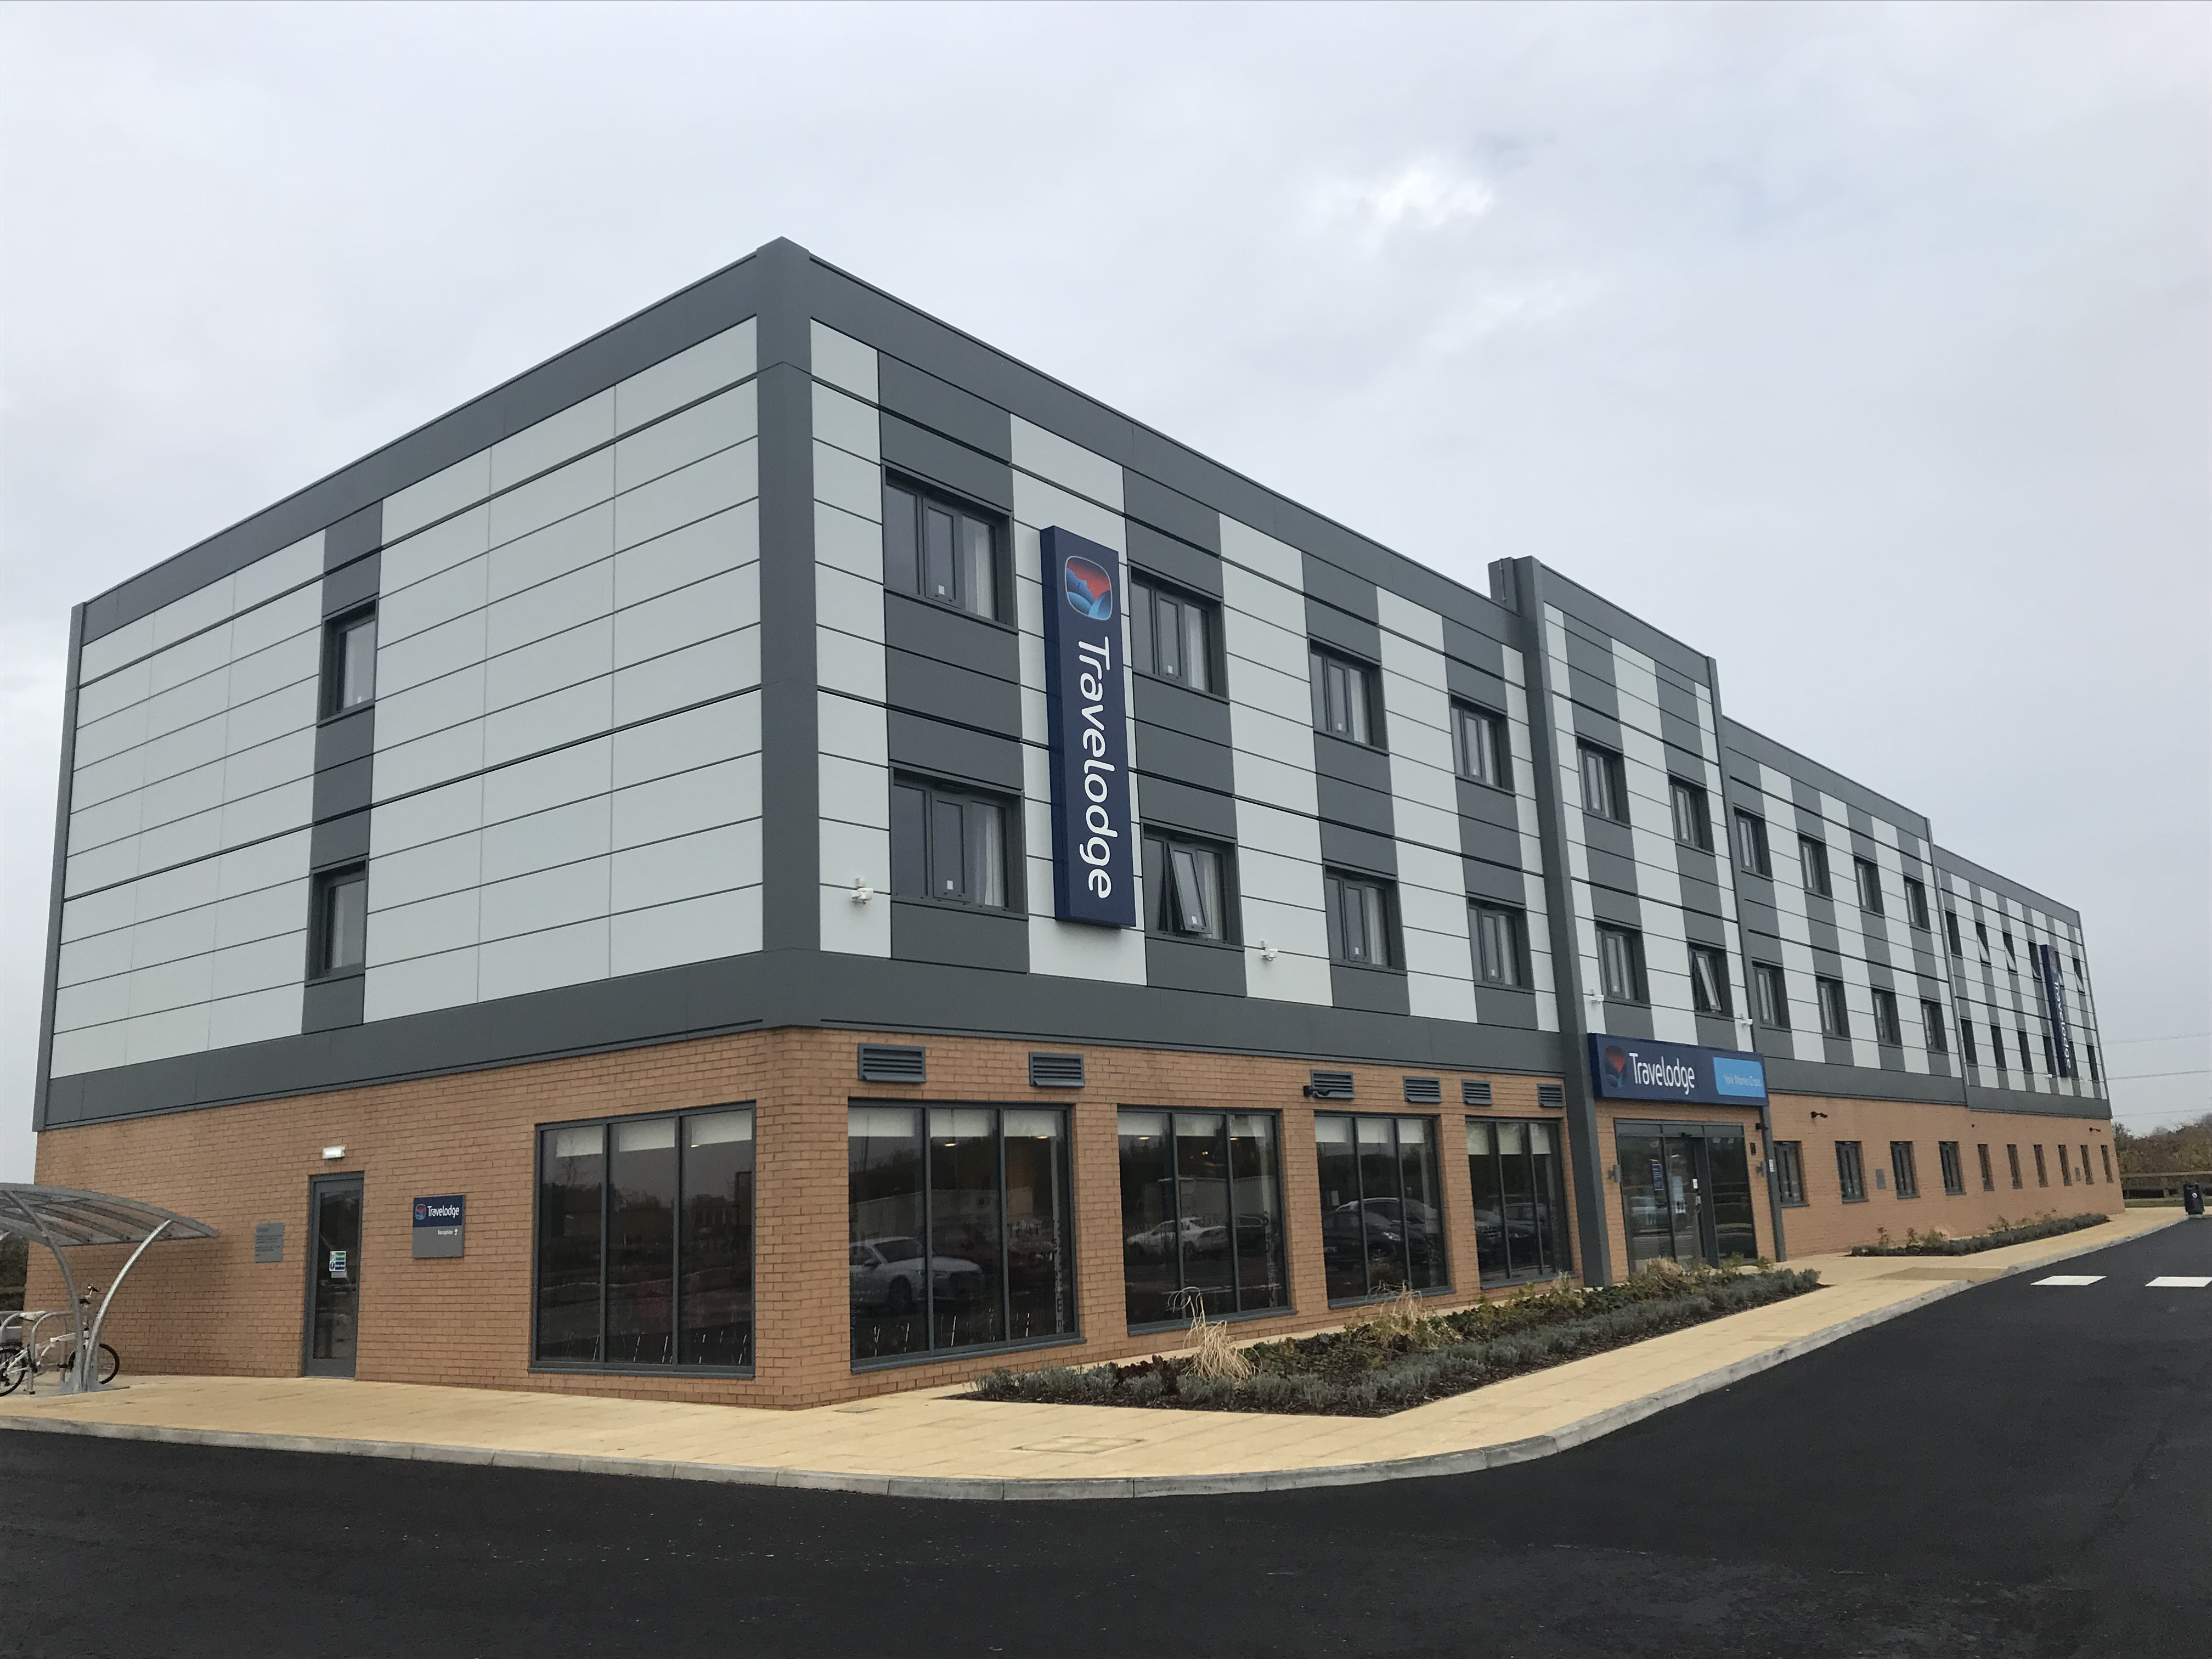 Travel Lodge York